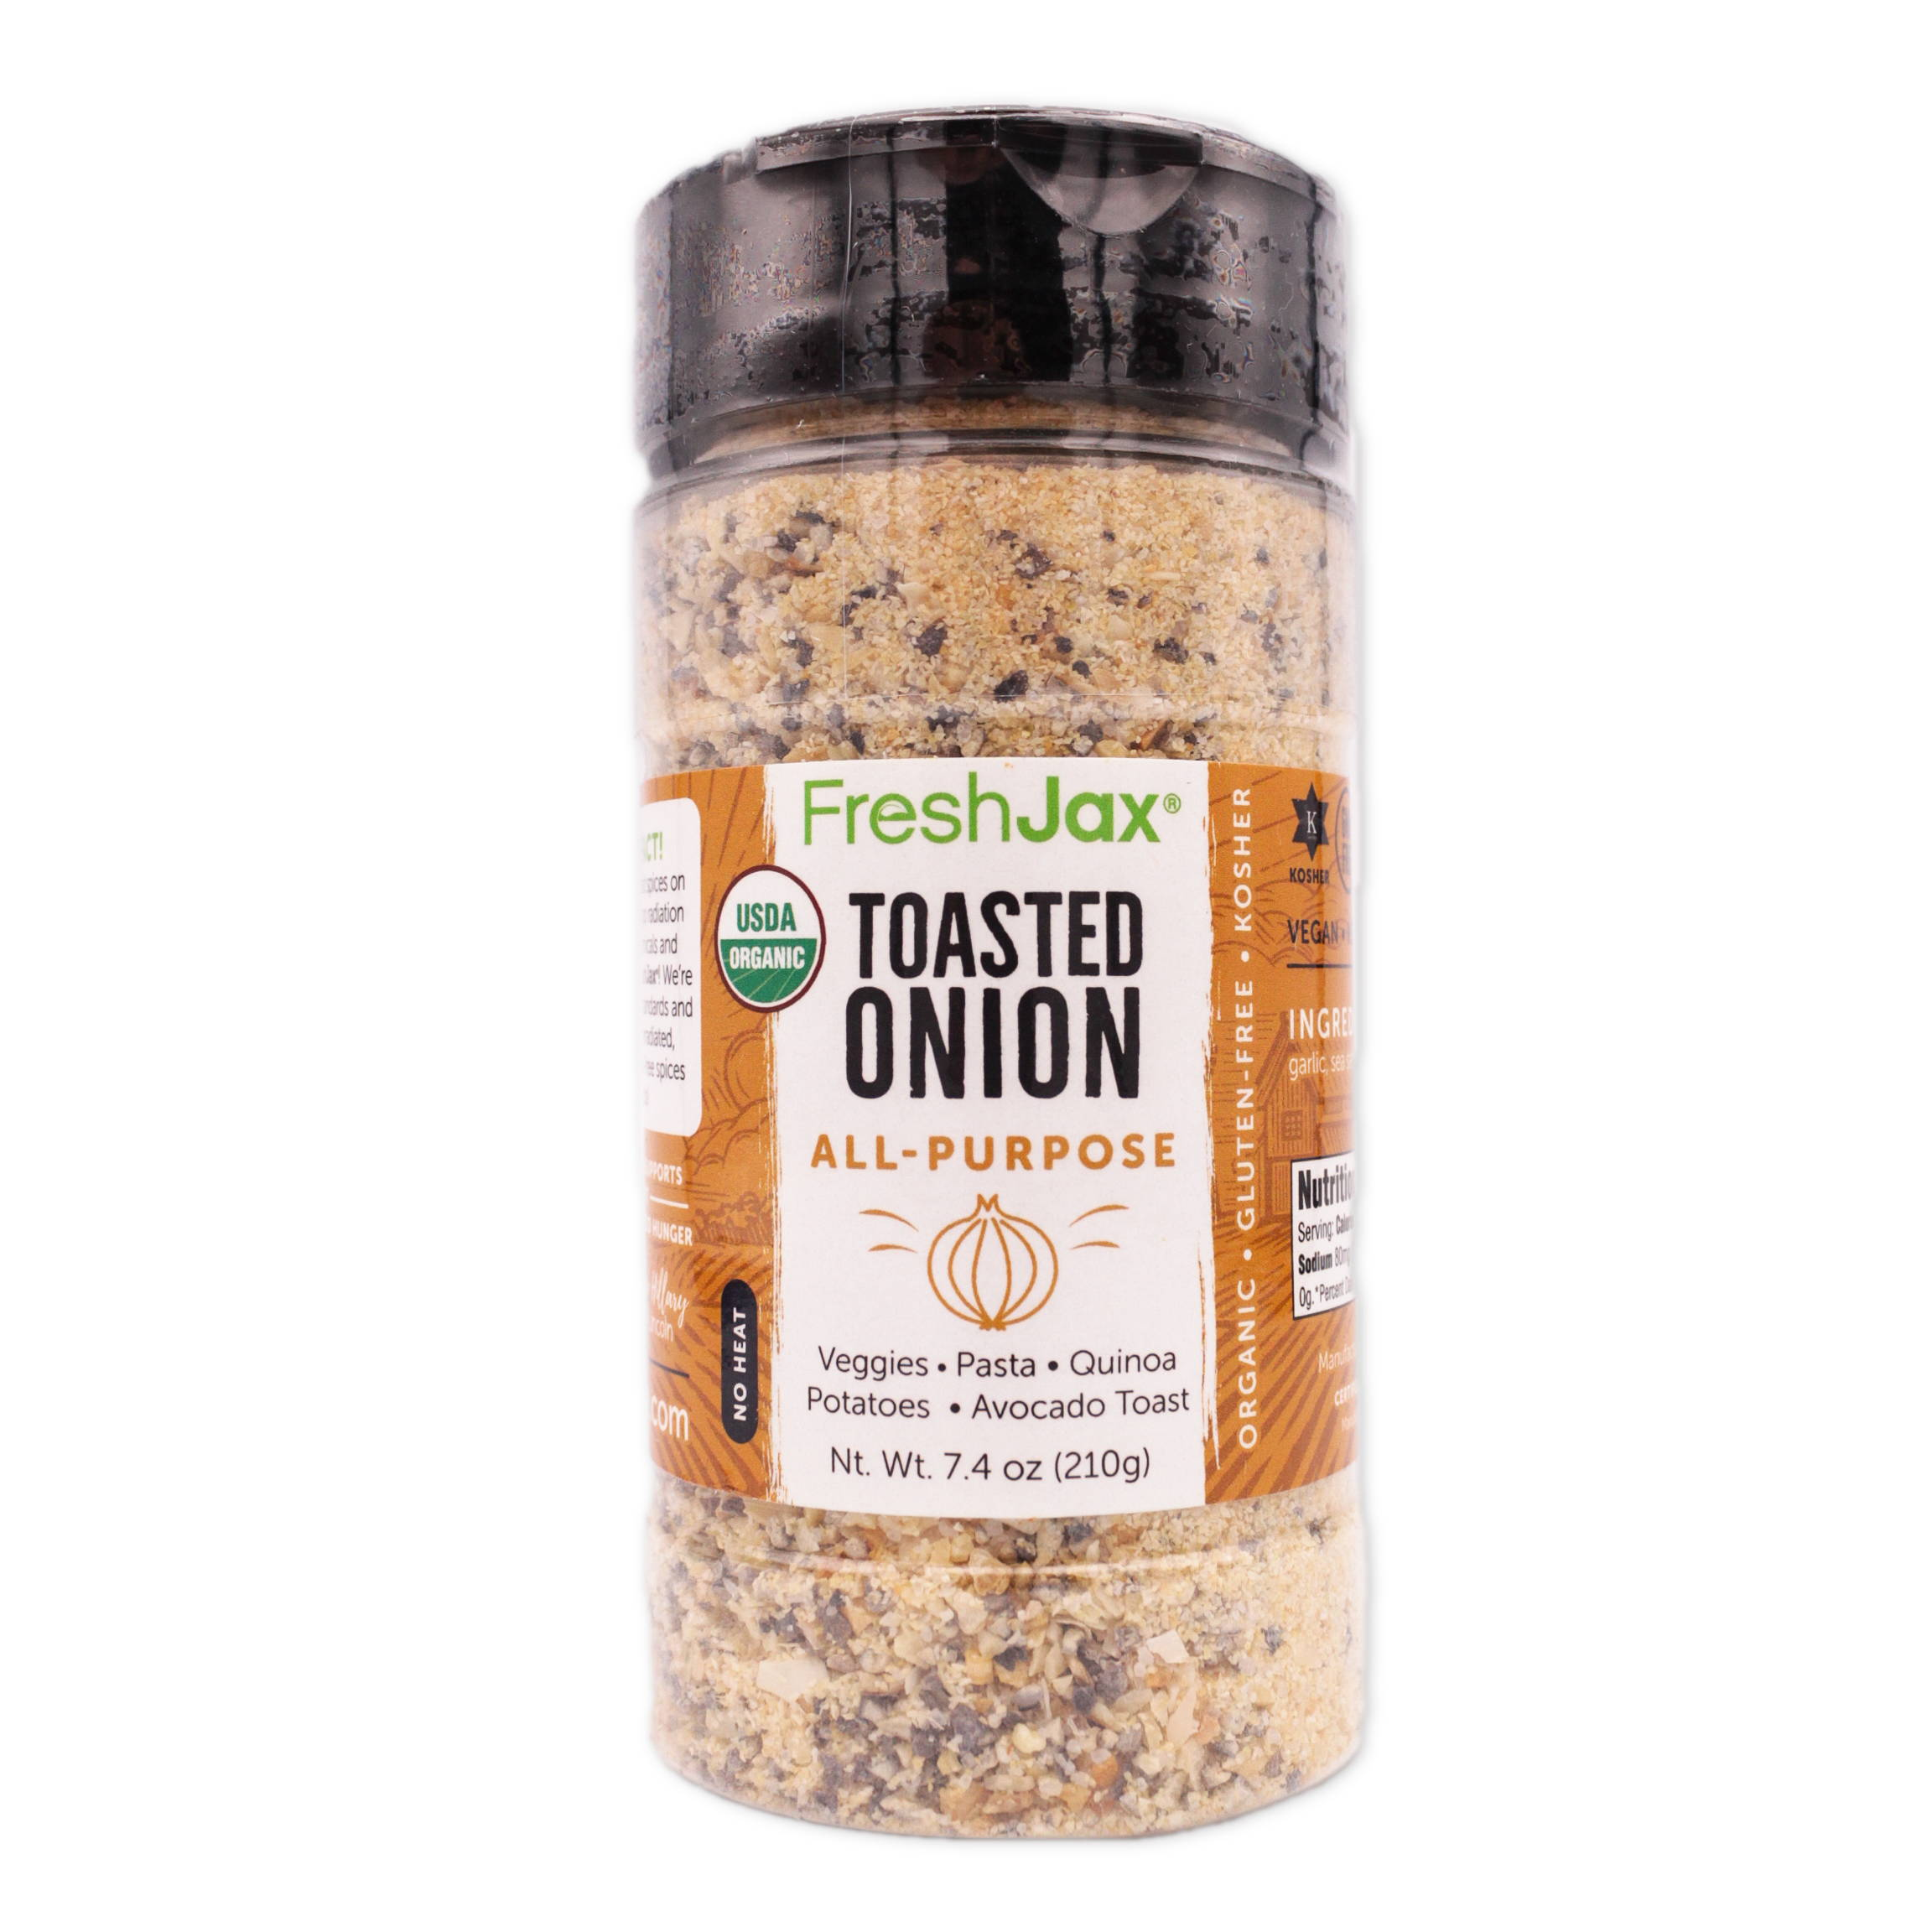 FreshJax Organic Spices Toasted Onion All-Purpose large bottle